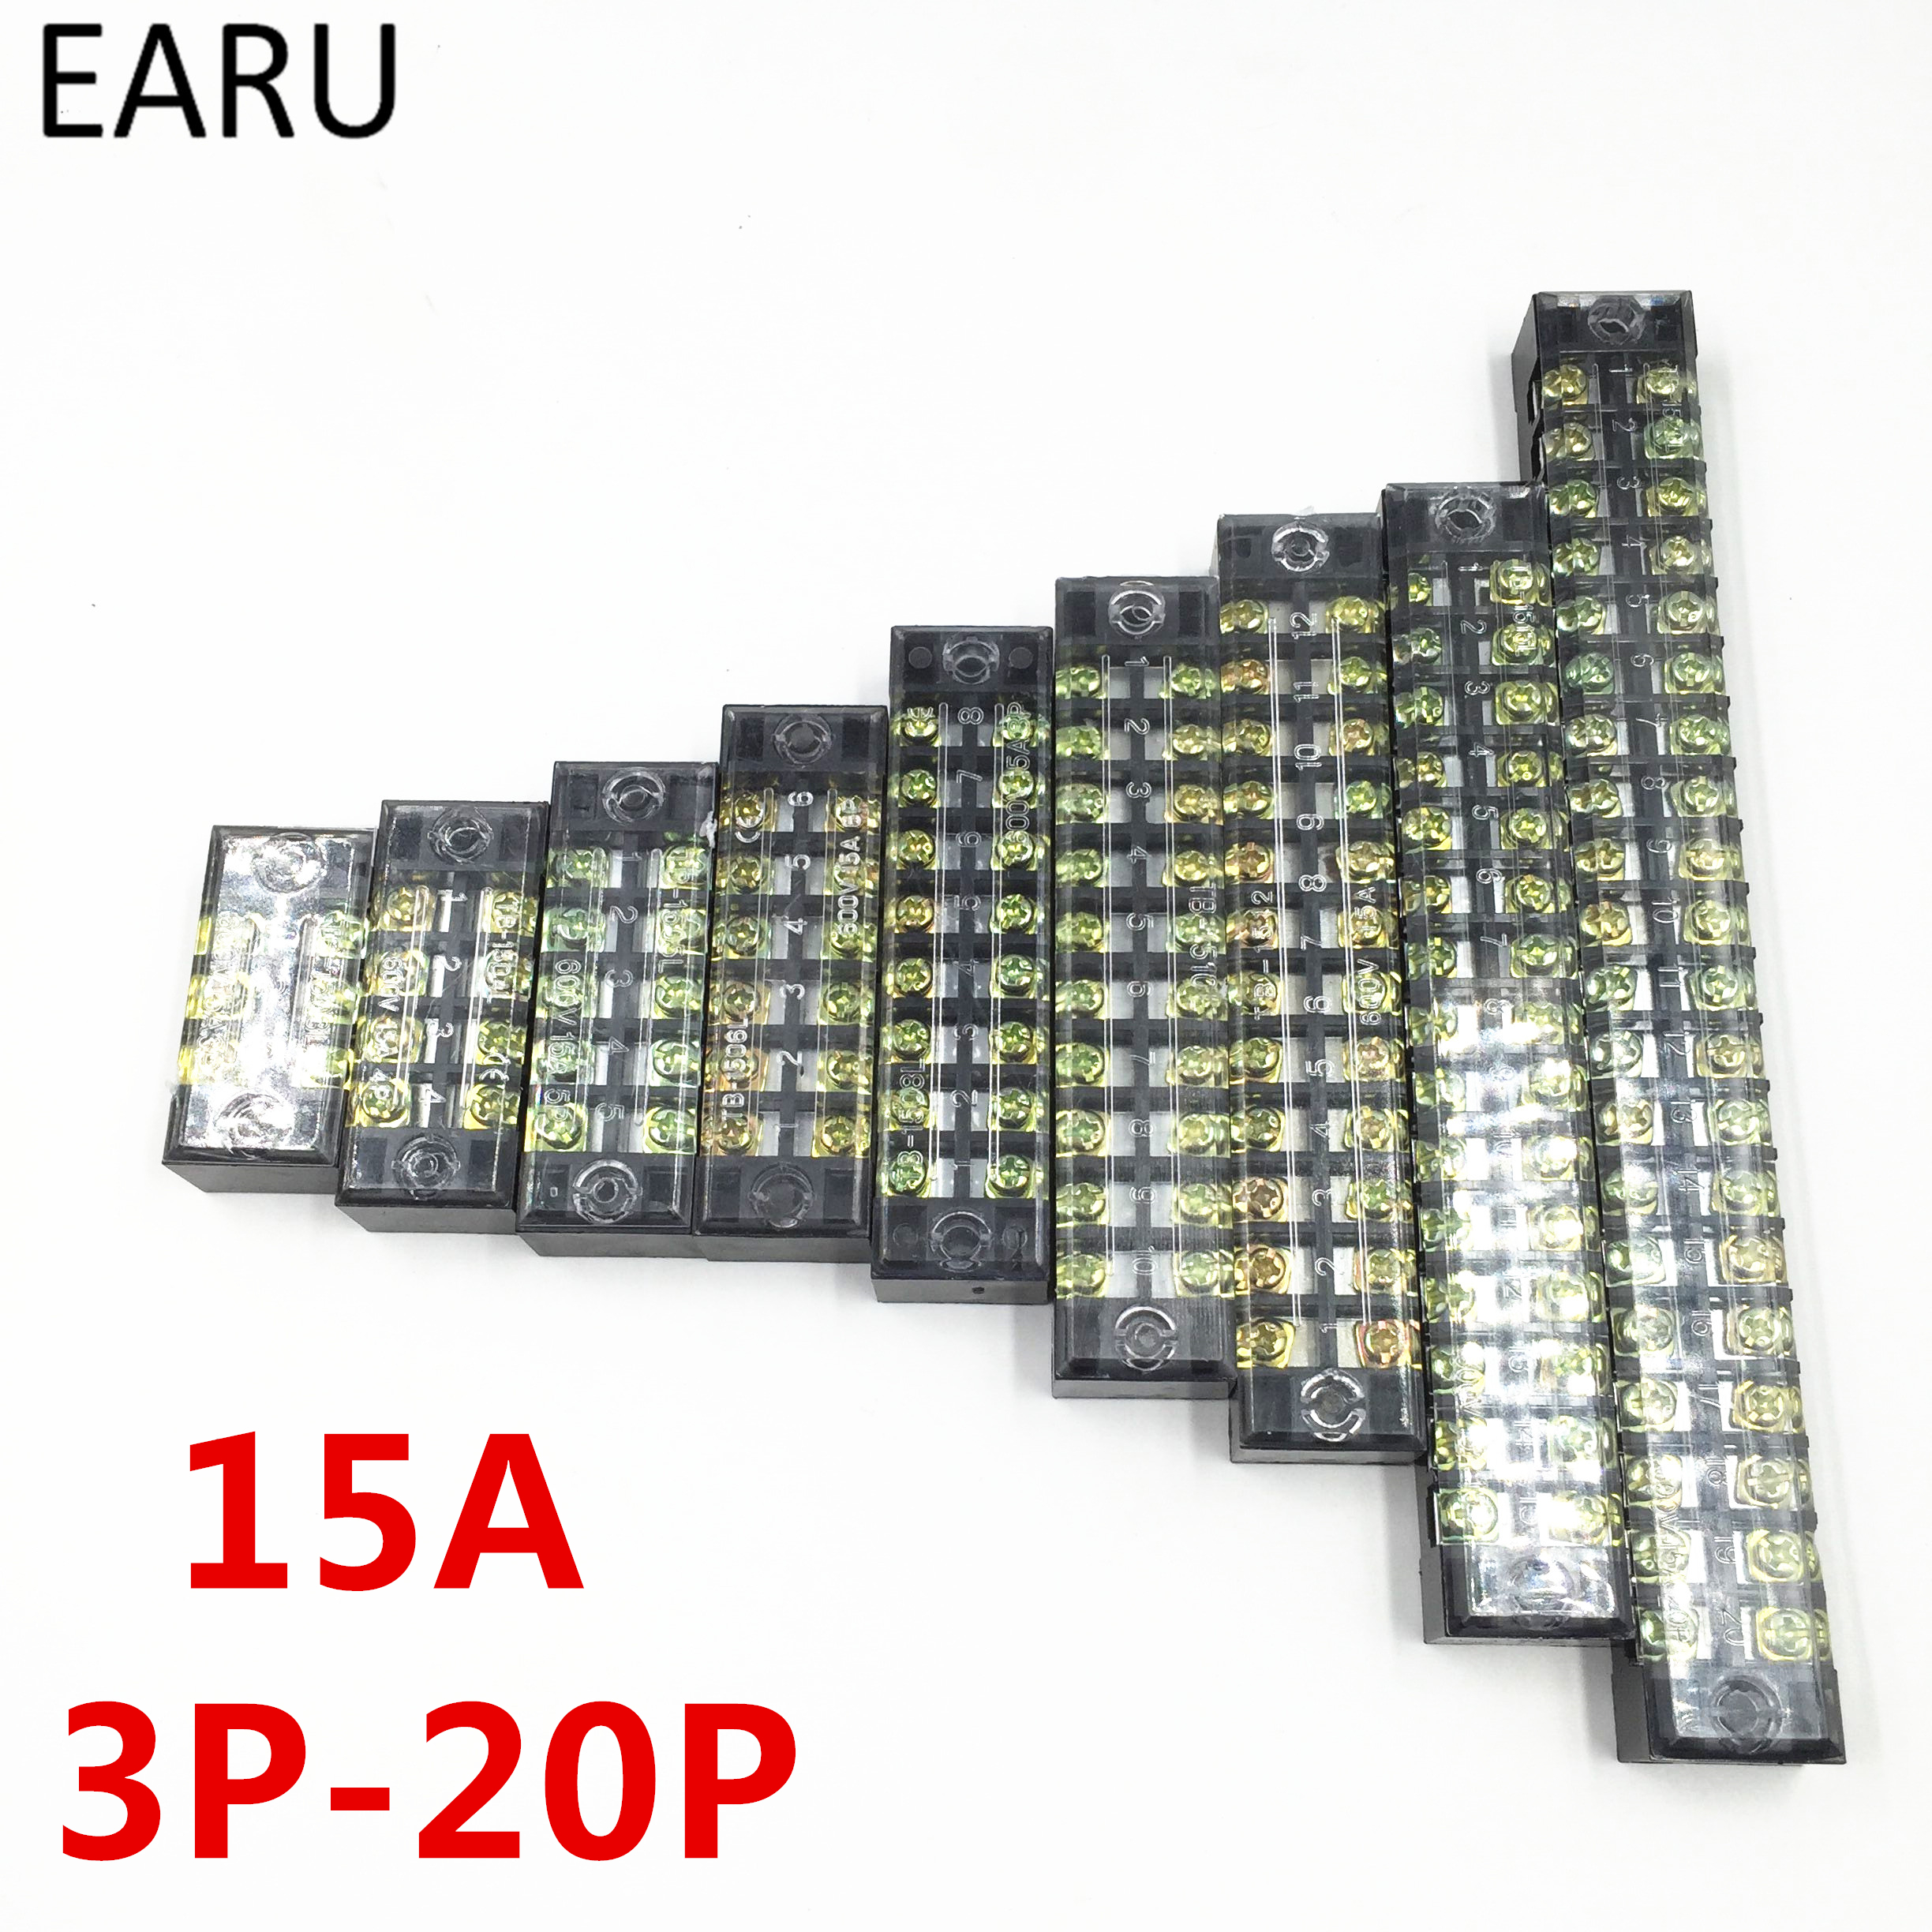 15A 600V Dual Row Barrier Screw Terminal Block Wire Connector TB Series 3 4 5 6 8 10 12 16 20 Positions Ways Factory Wholesale hot factory direct wholesale idc40 male plug 40pin port header terminal breakout pcb board block 2 row screw